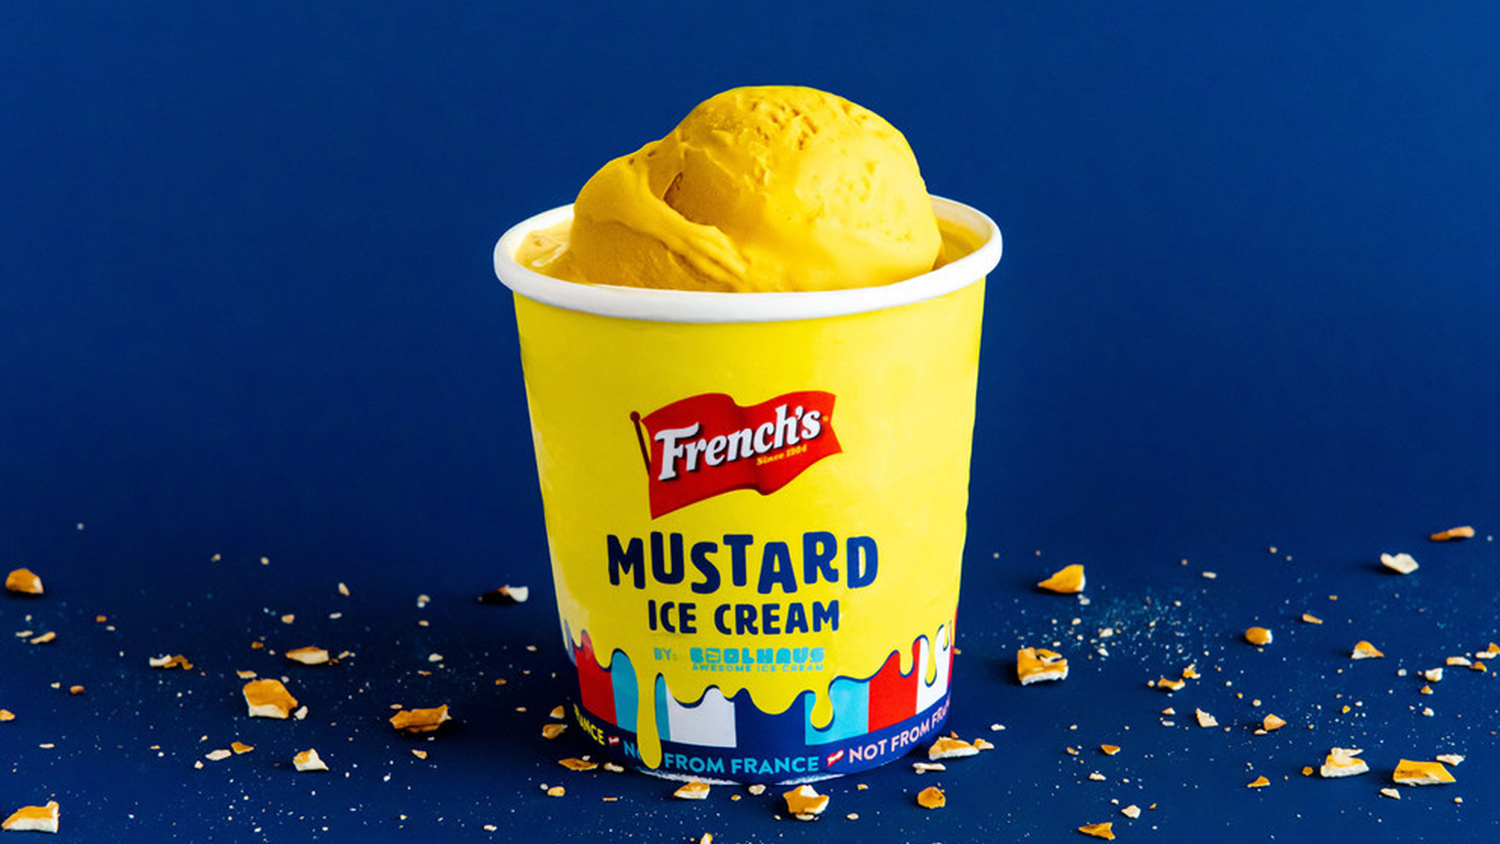 [Strategy / Concept Development / Prototyping]  French's Mustard Ice Cream